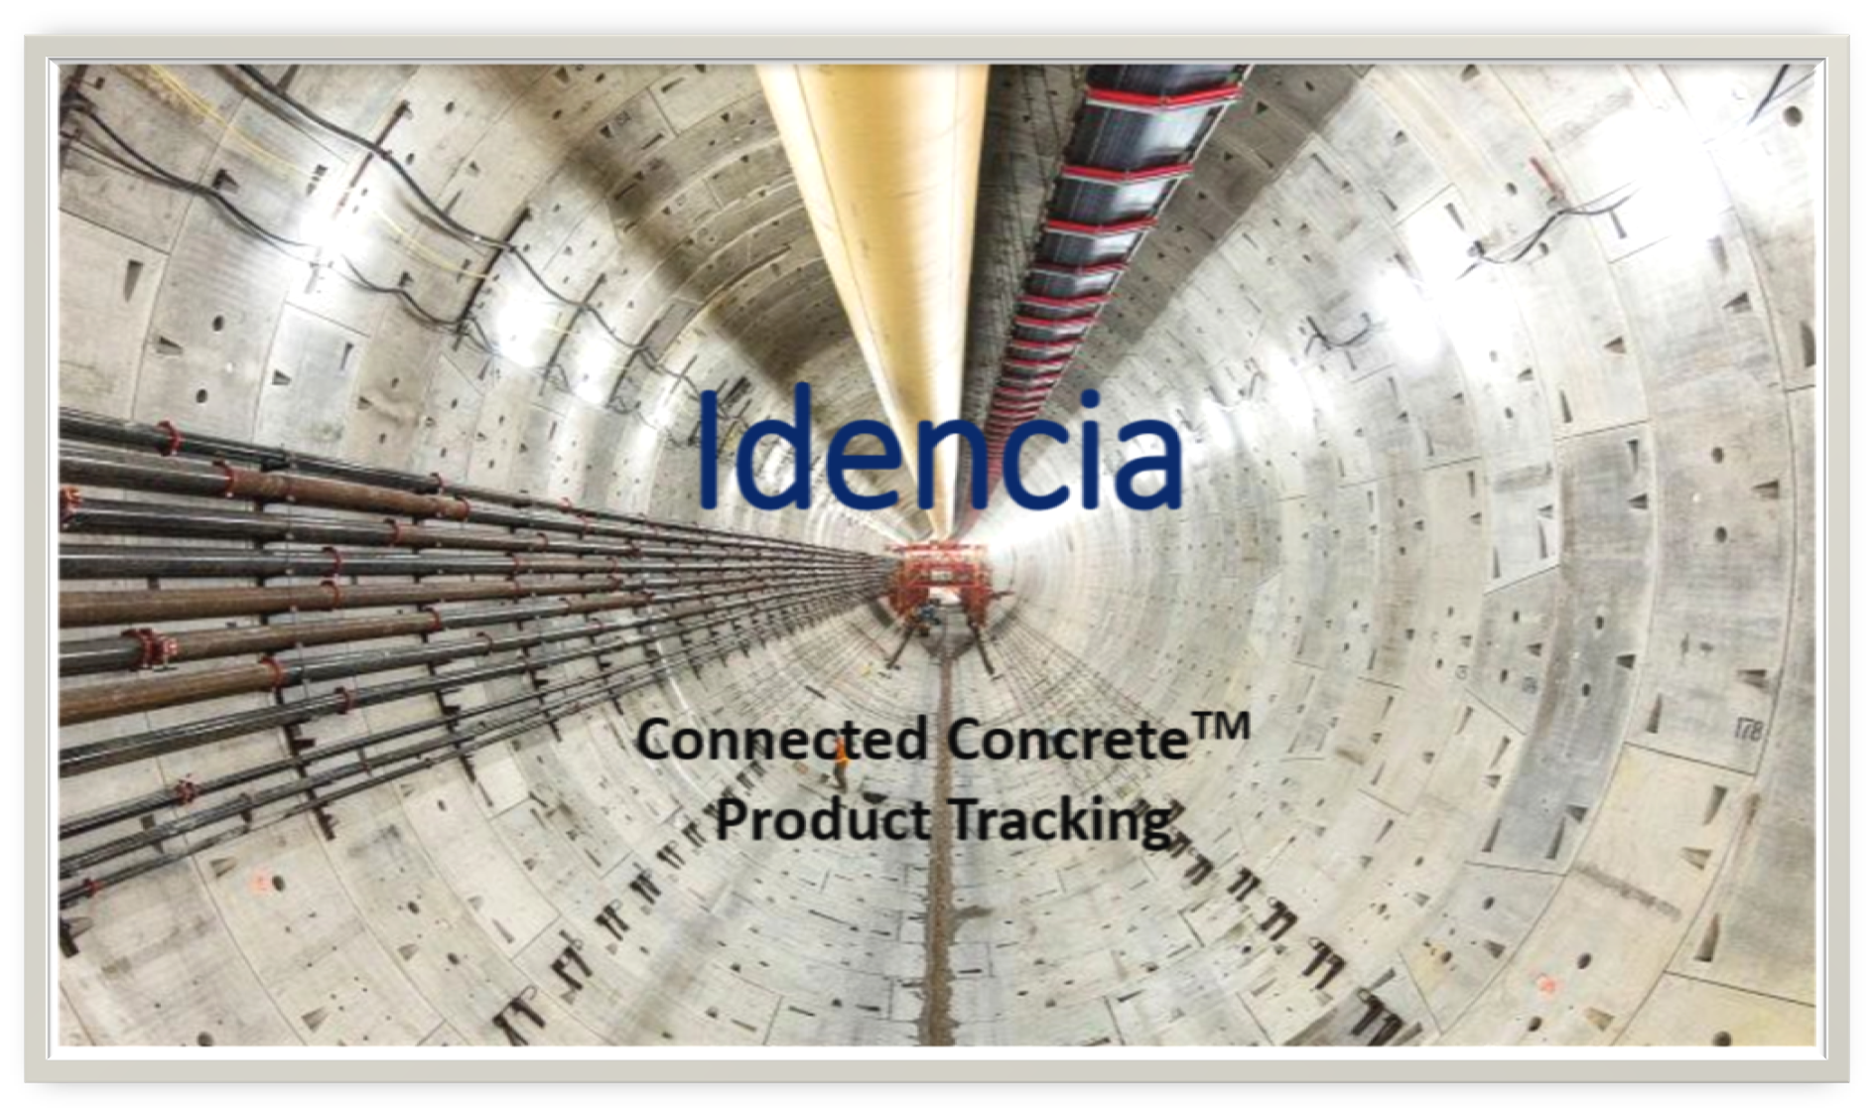 Idencia Overview Deck Image-1